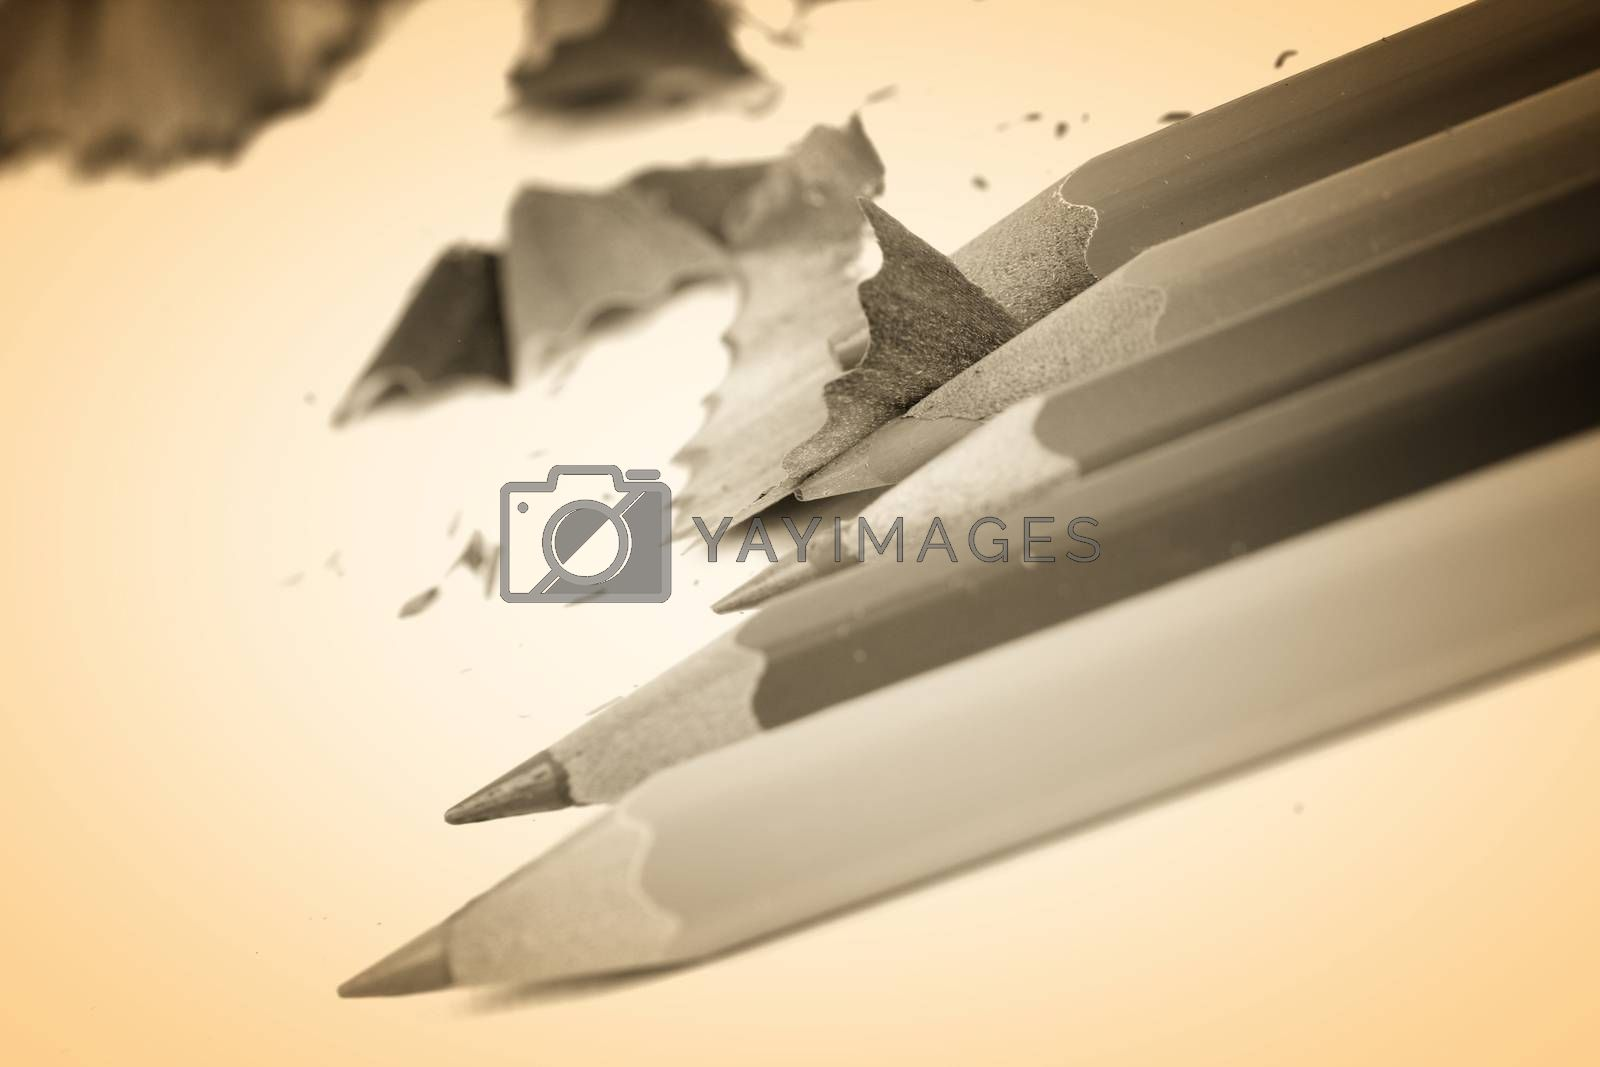 Close-up pencil. Very good details and colors.